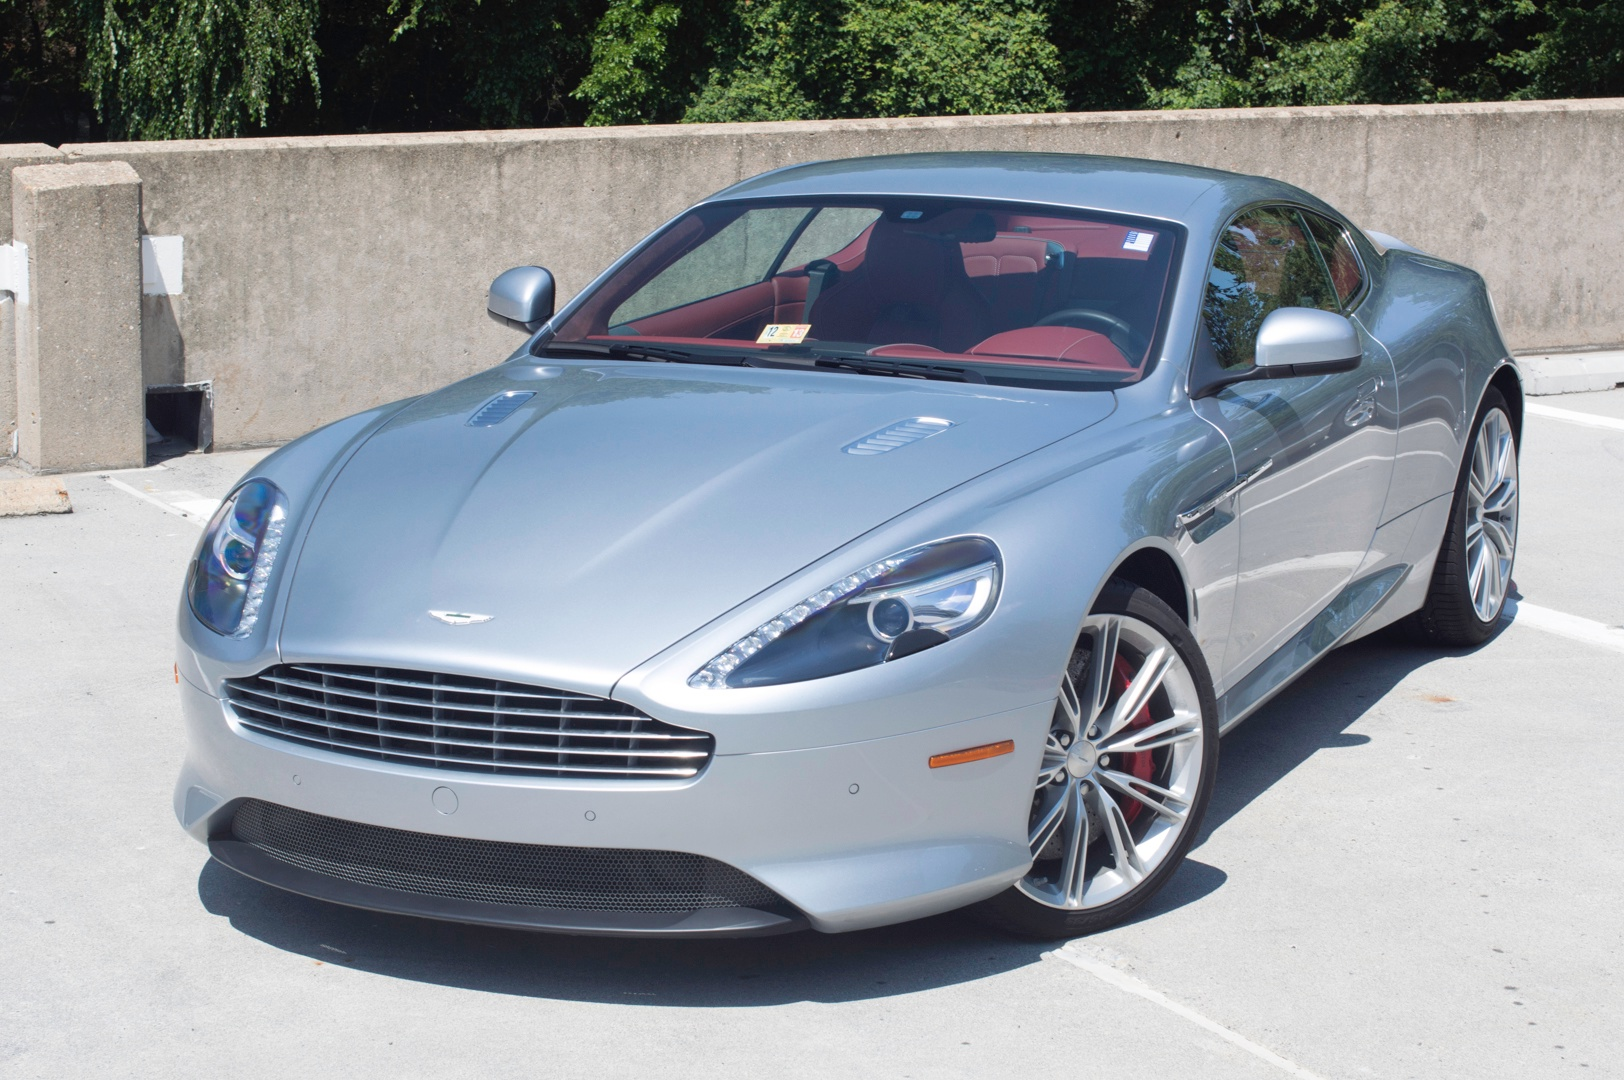 2013 aston martin db9 stock 3na14750 for sale near. Black Bedroom Furniture Sets. Home Design Ideas